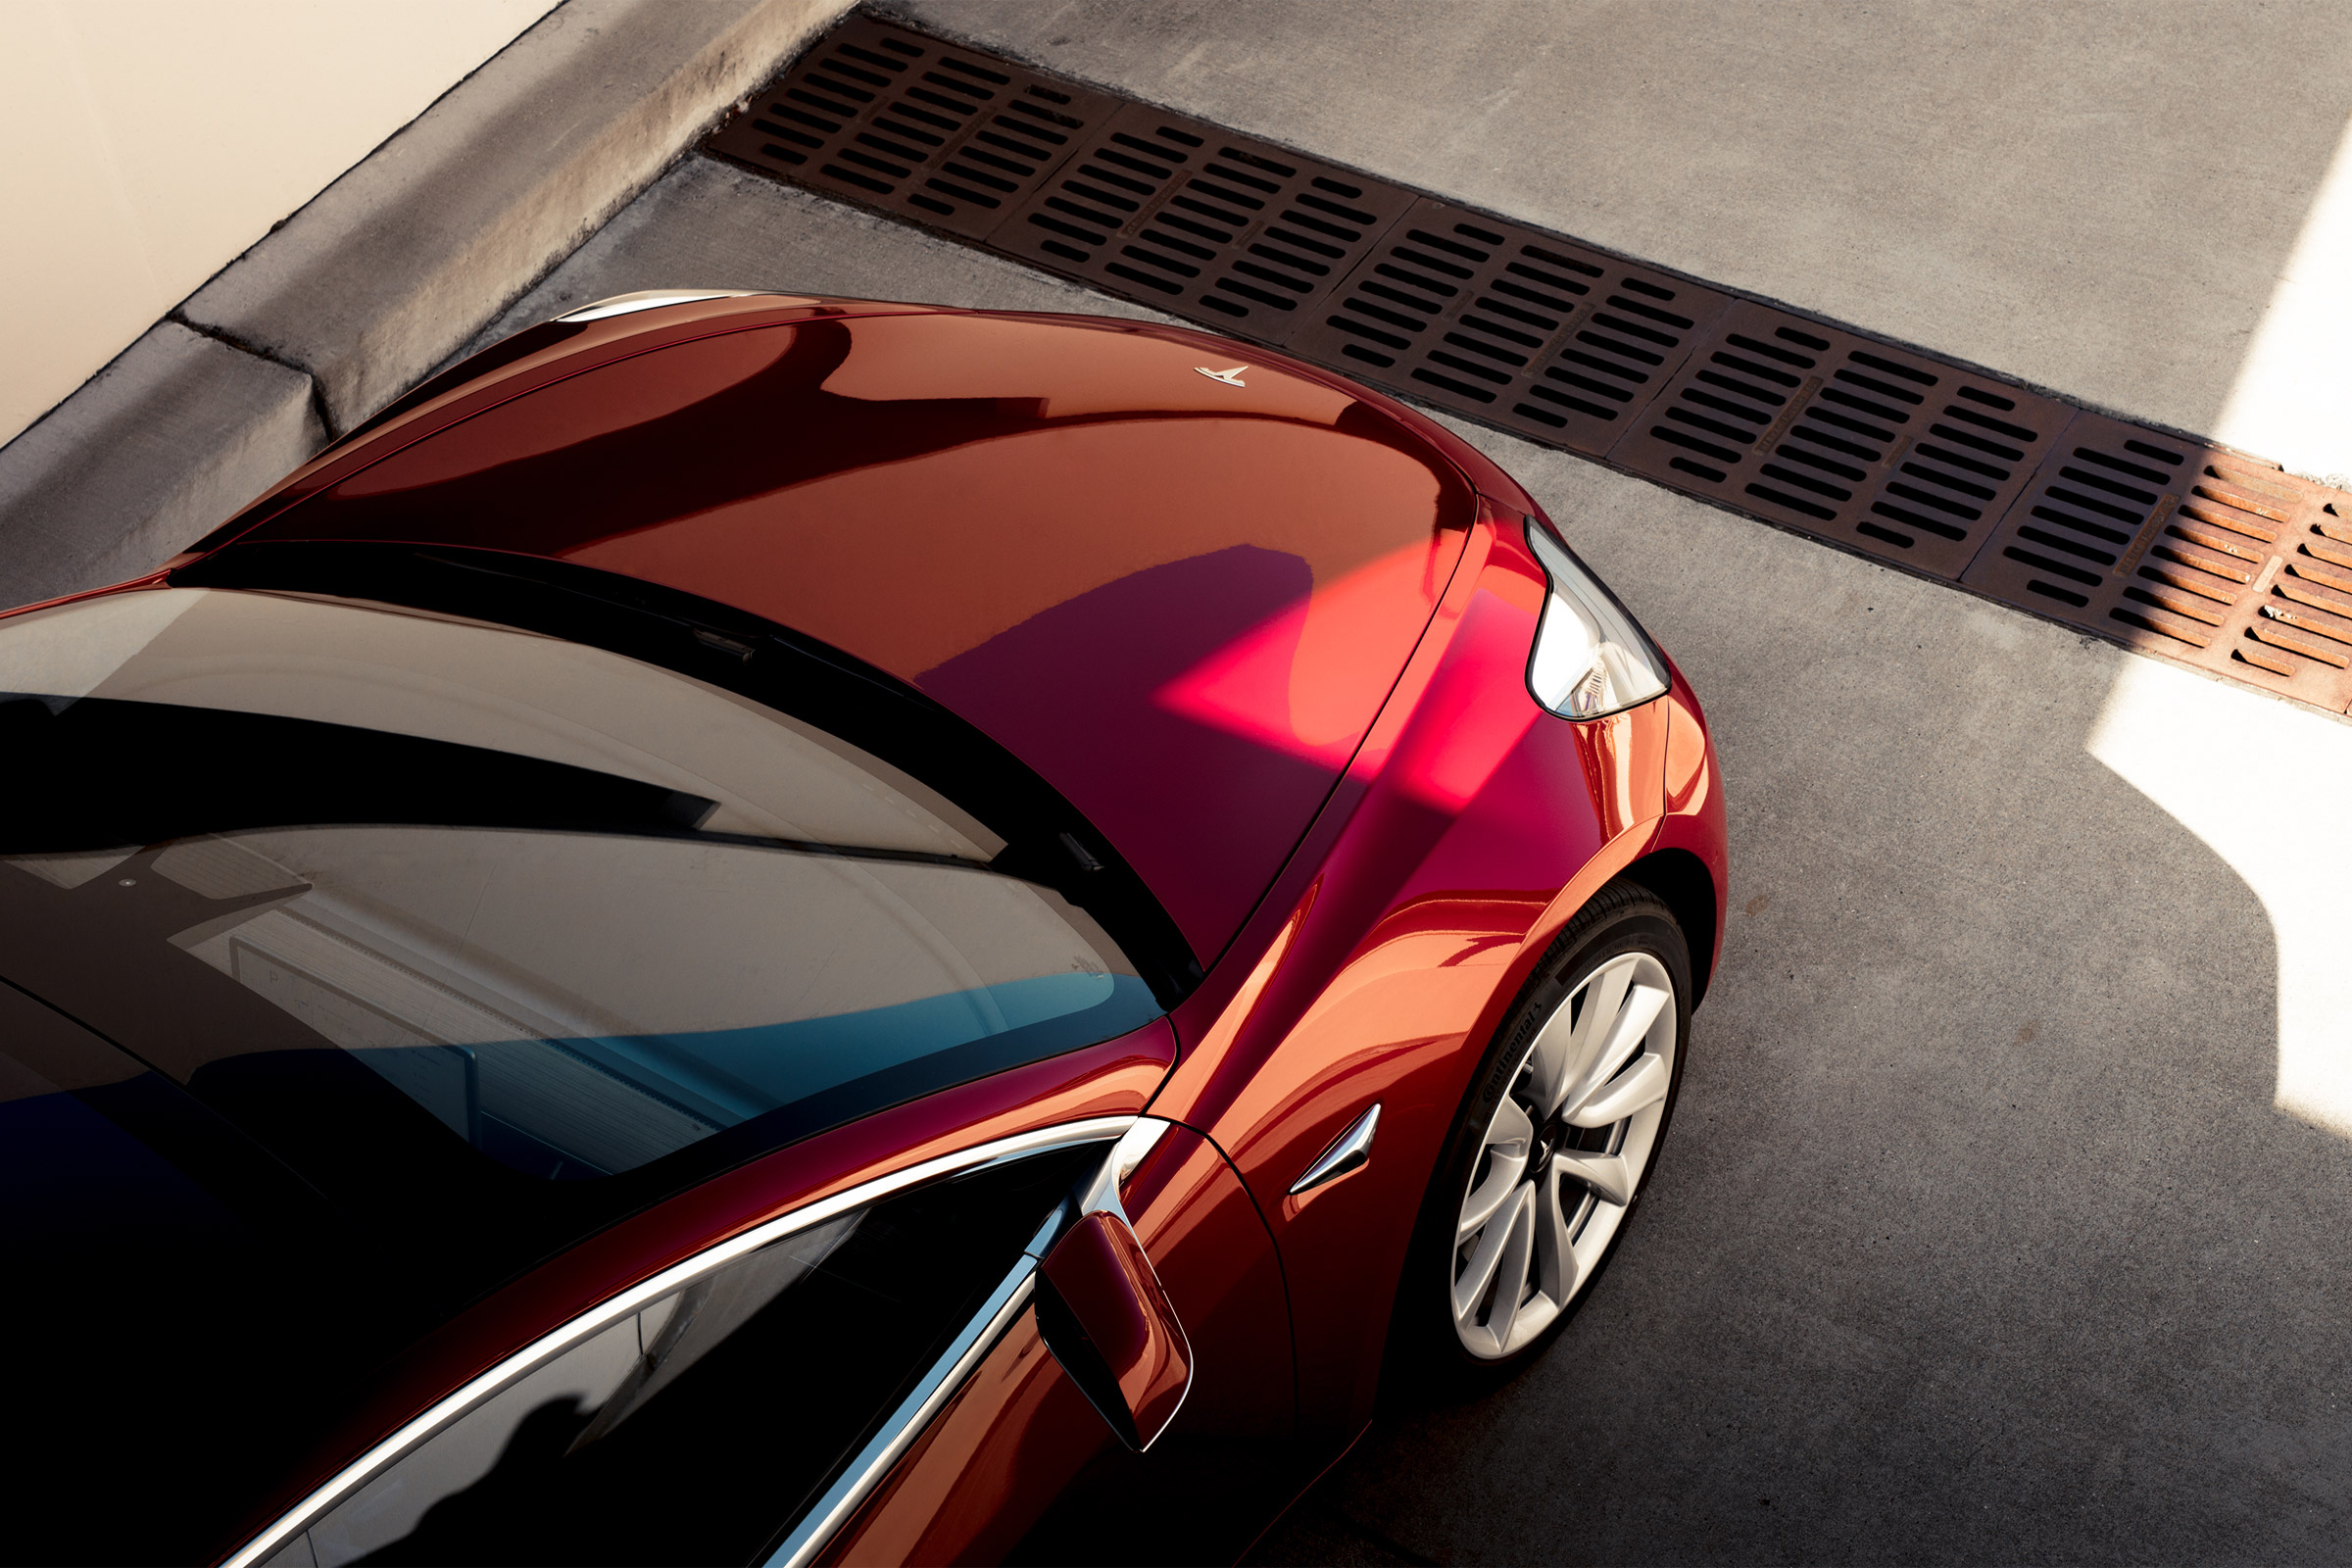 Tesla Model 3: specs, prices and full details on the all